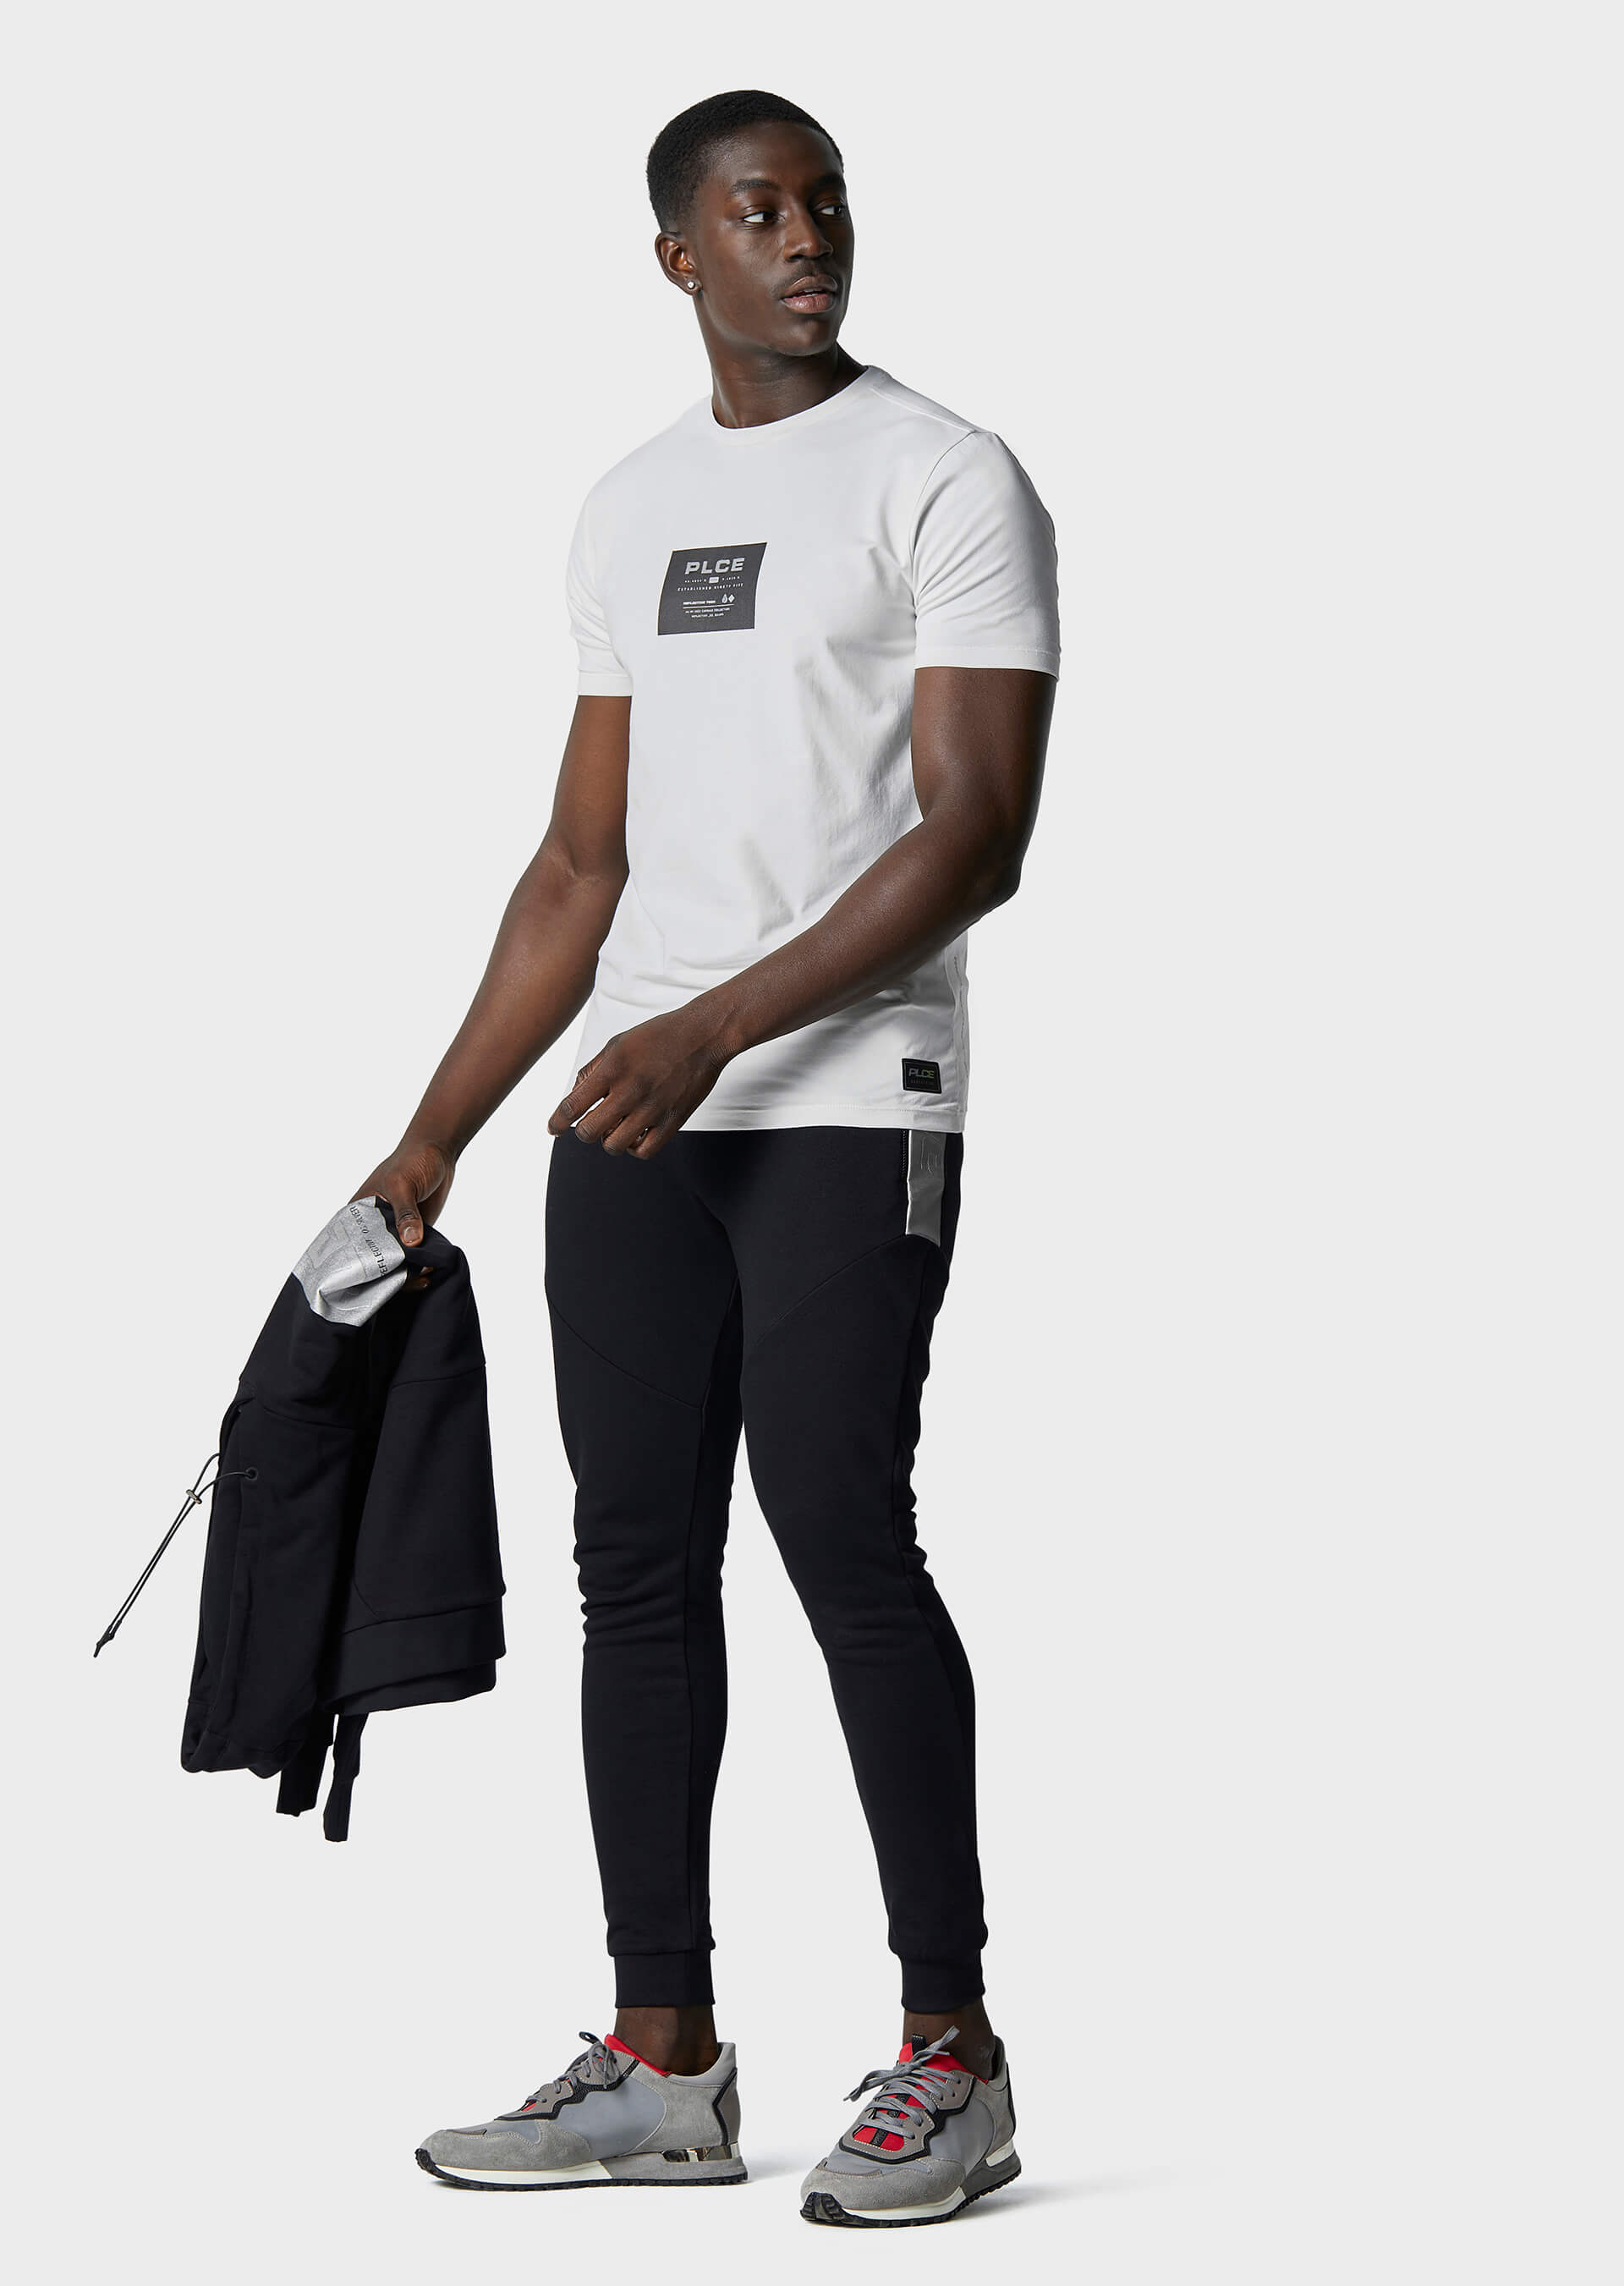 Buckley White T Shirt second_image